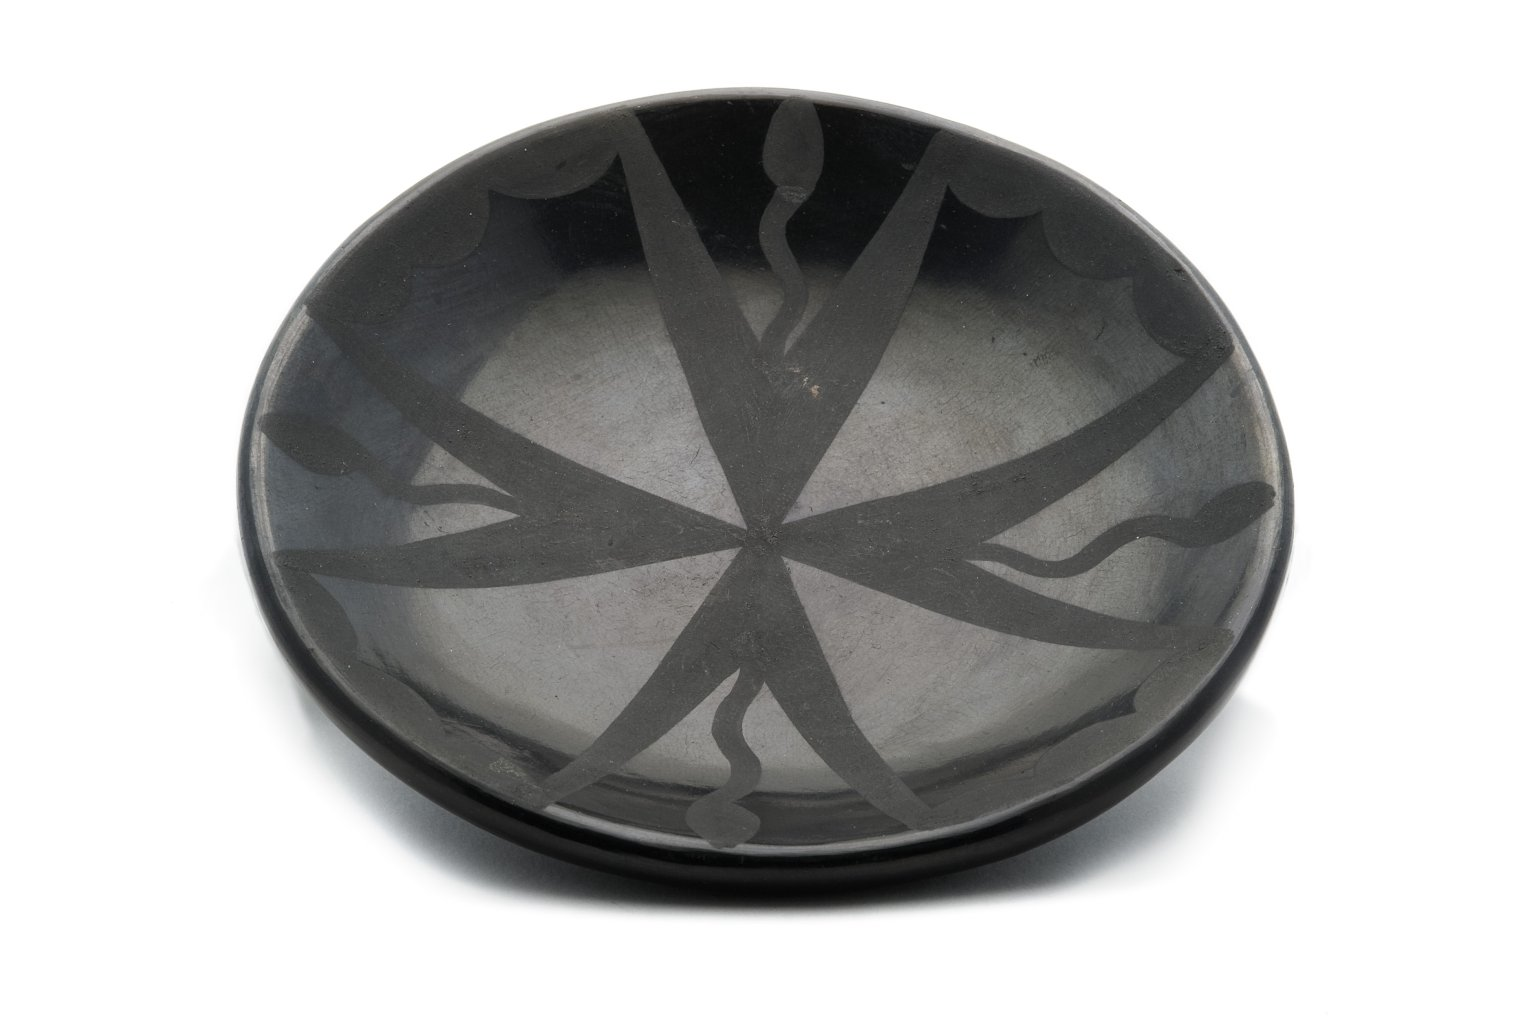 Blaclware pottery plate